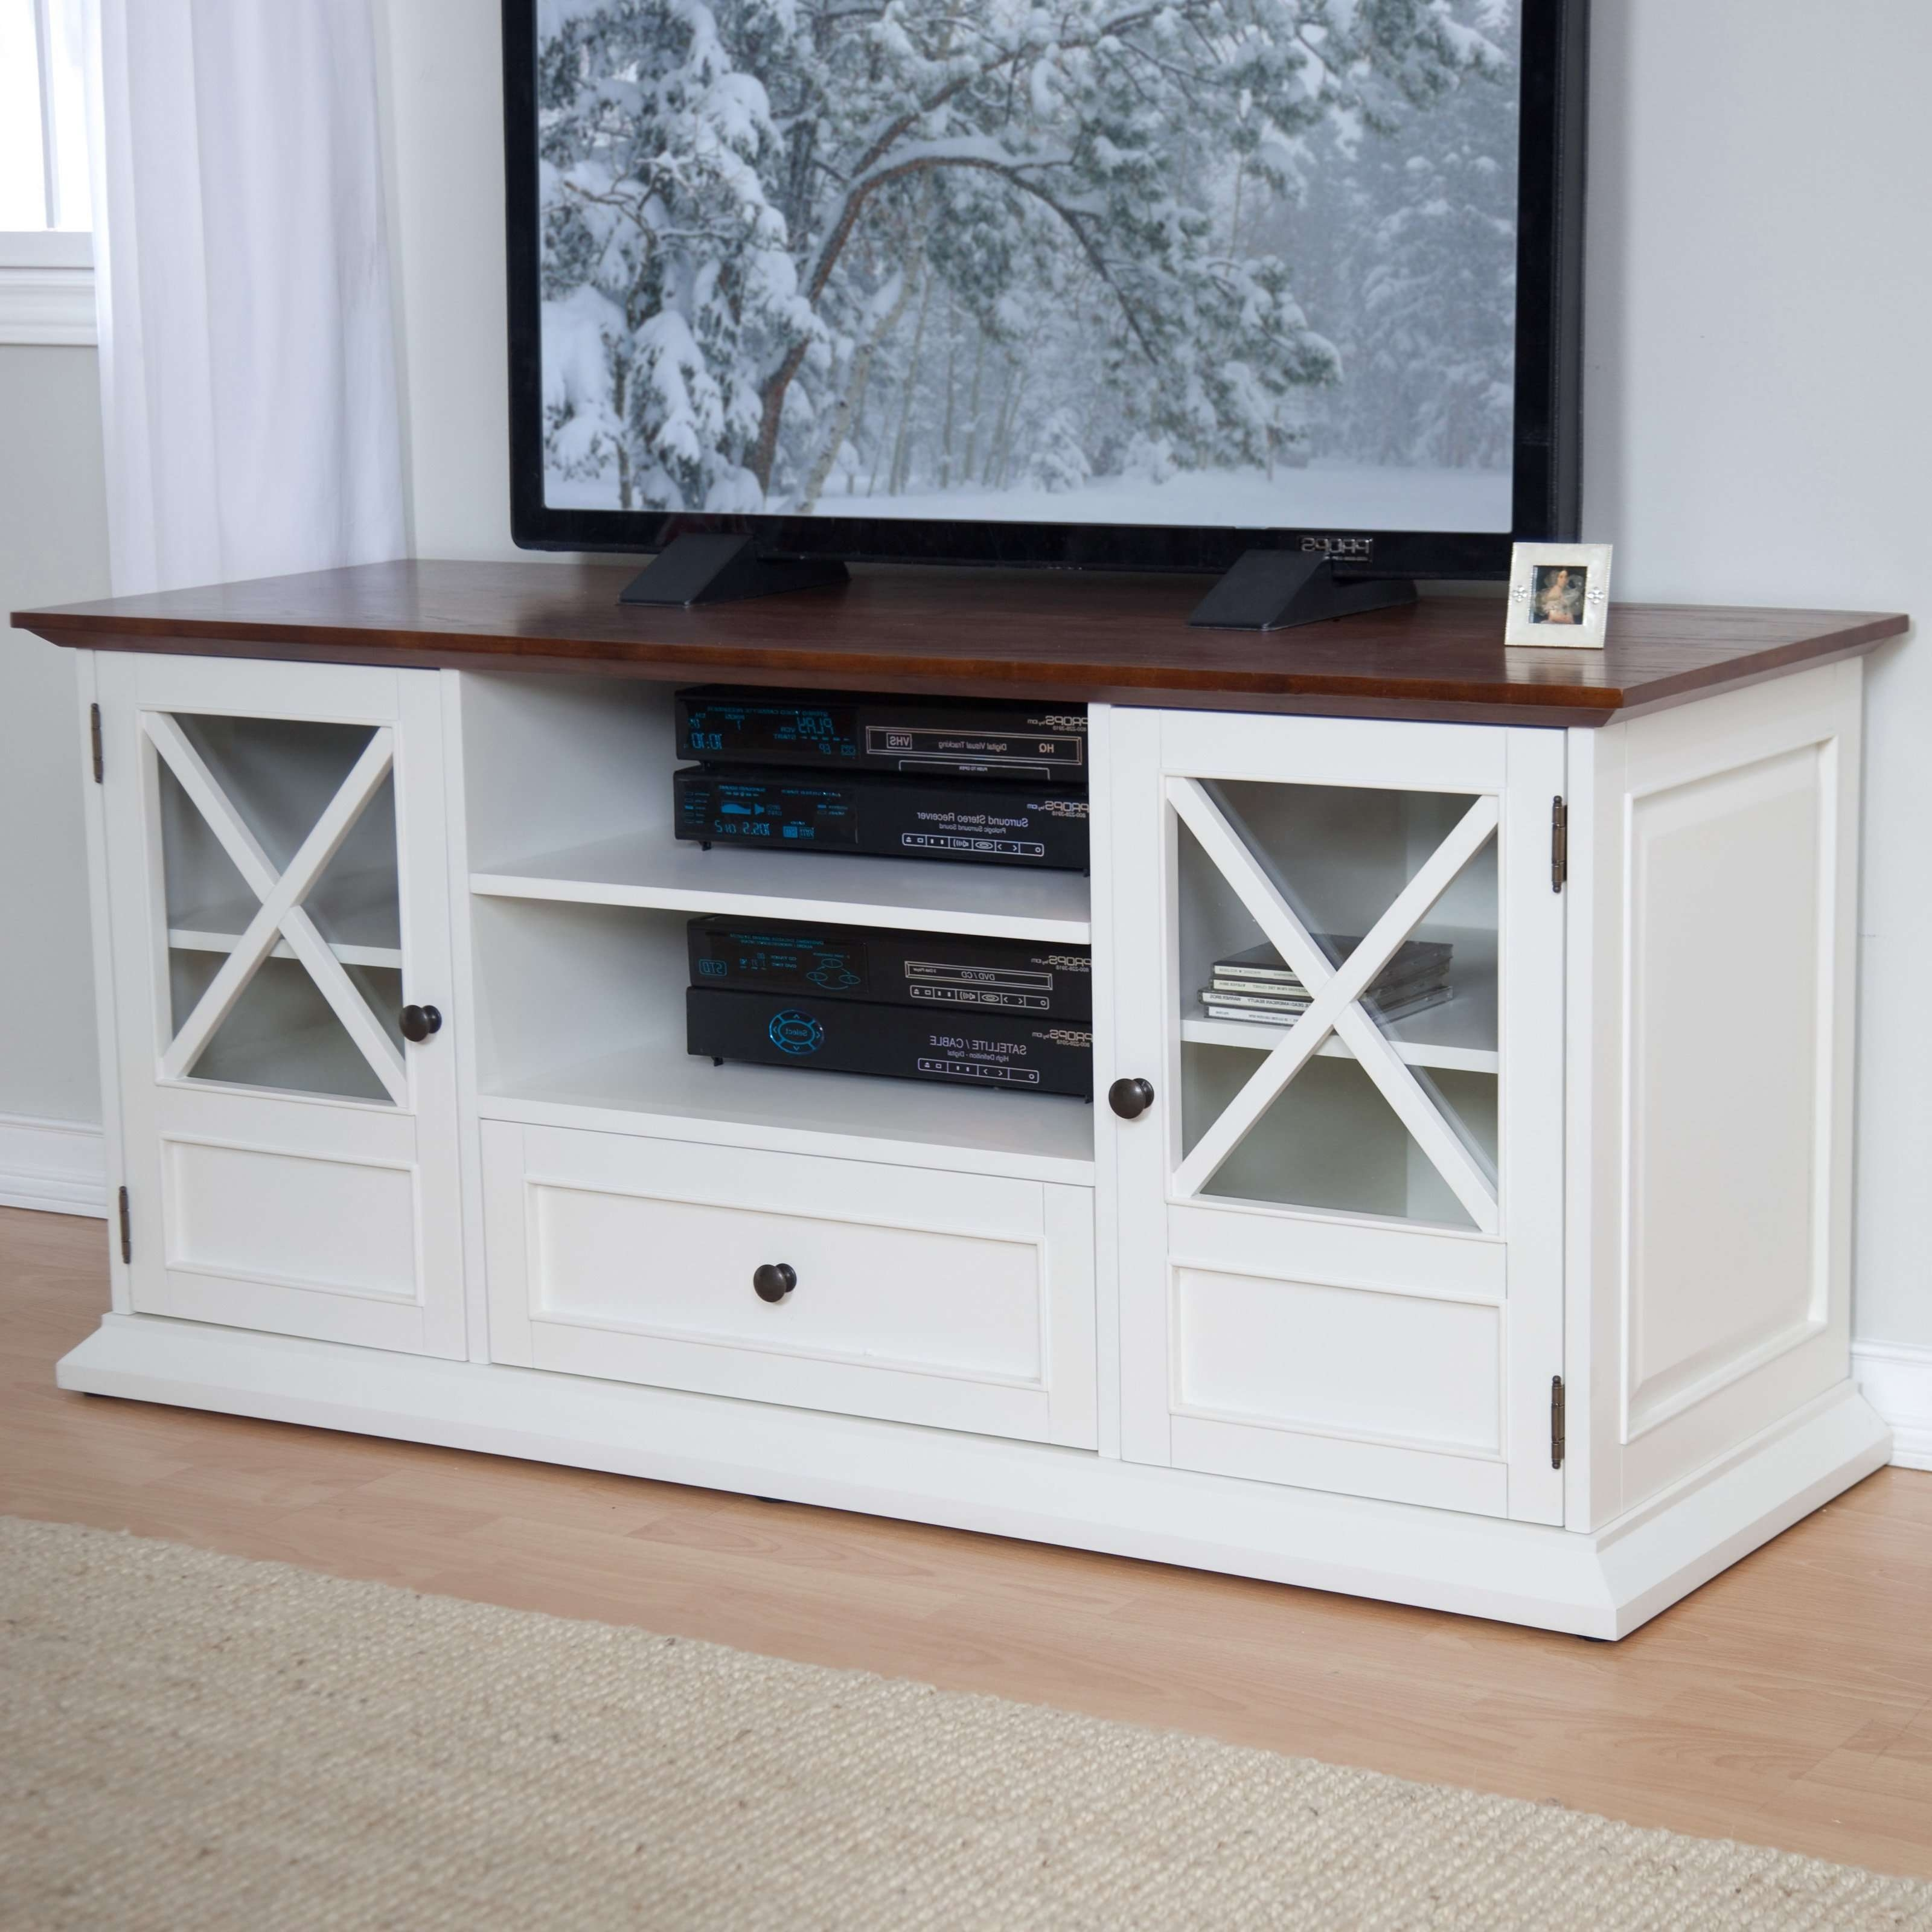 Belham Living Hampton Tv Stand – White/oak | Hayneedle Throughout White Wood Tv Stands (View 1 of 15)